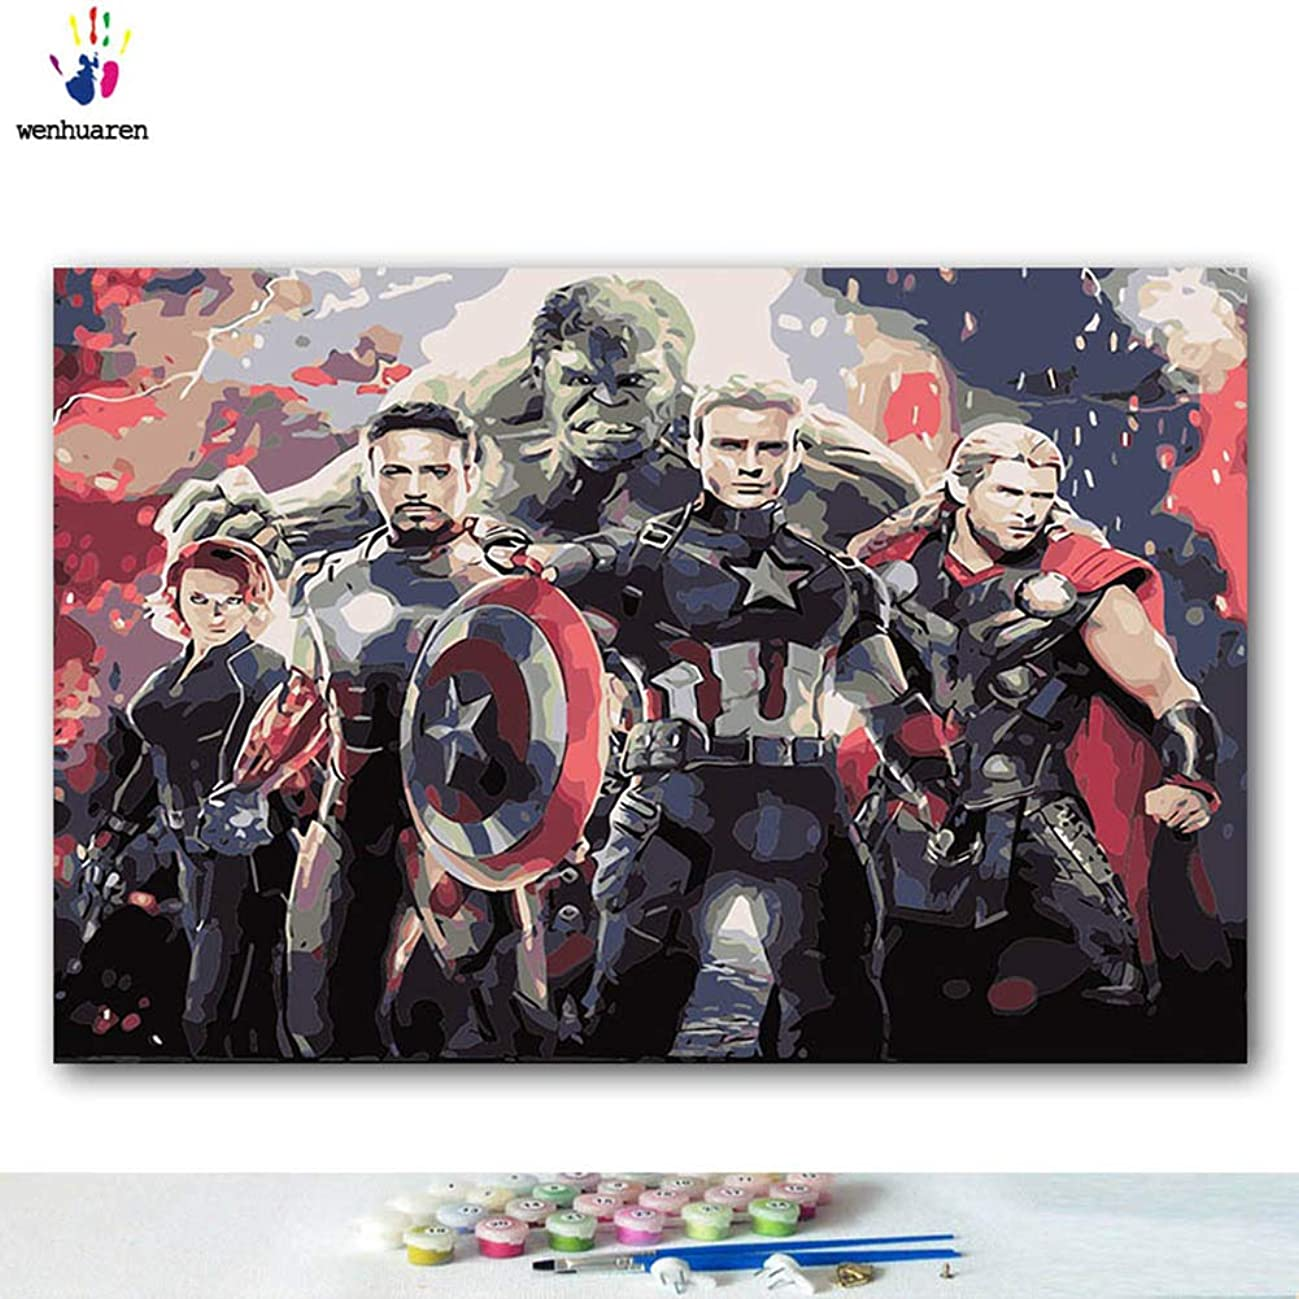 Paint by Number Kits 12 x 18 inch Canvas DIY Oil Painting for Kids, Students, Adults Beginner with Brushes and Acrylic Pigment -Avengers Movie Characters(Without Frame)